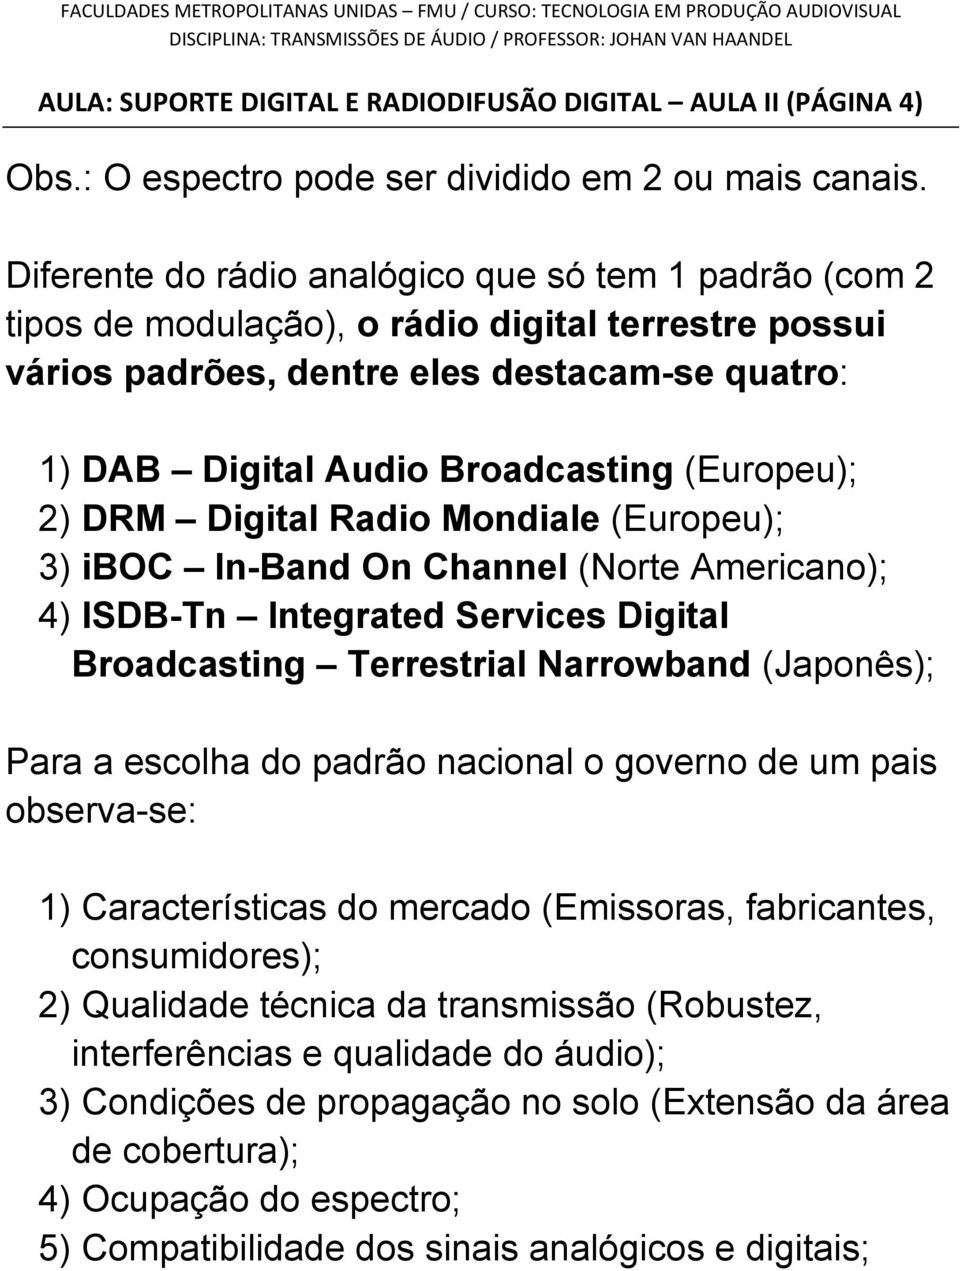 (Europeu); 2) DRM Digital Radio Mondiale (Europeu); 3) iboc In-Band On Channel (Norte Americano); 4) ISDB-Tn Integrated Services Digital Broadcasting Terrestrial Narrowband (Japonês); Para a escolha